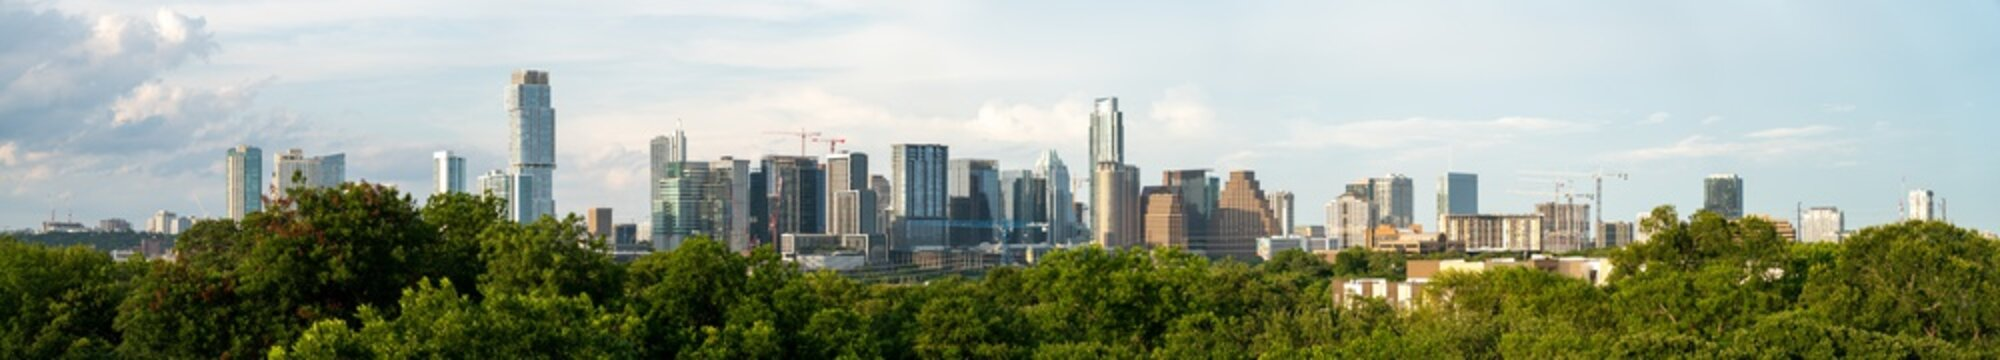 Austin, Texas - June 25, 2020: View of Downtown Austin Skyline with Multiple Constructions Cranes During Daytime